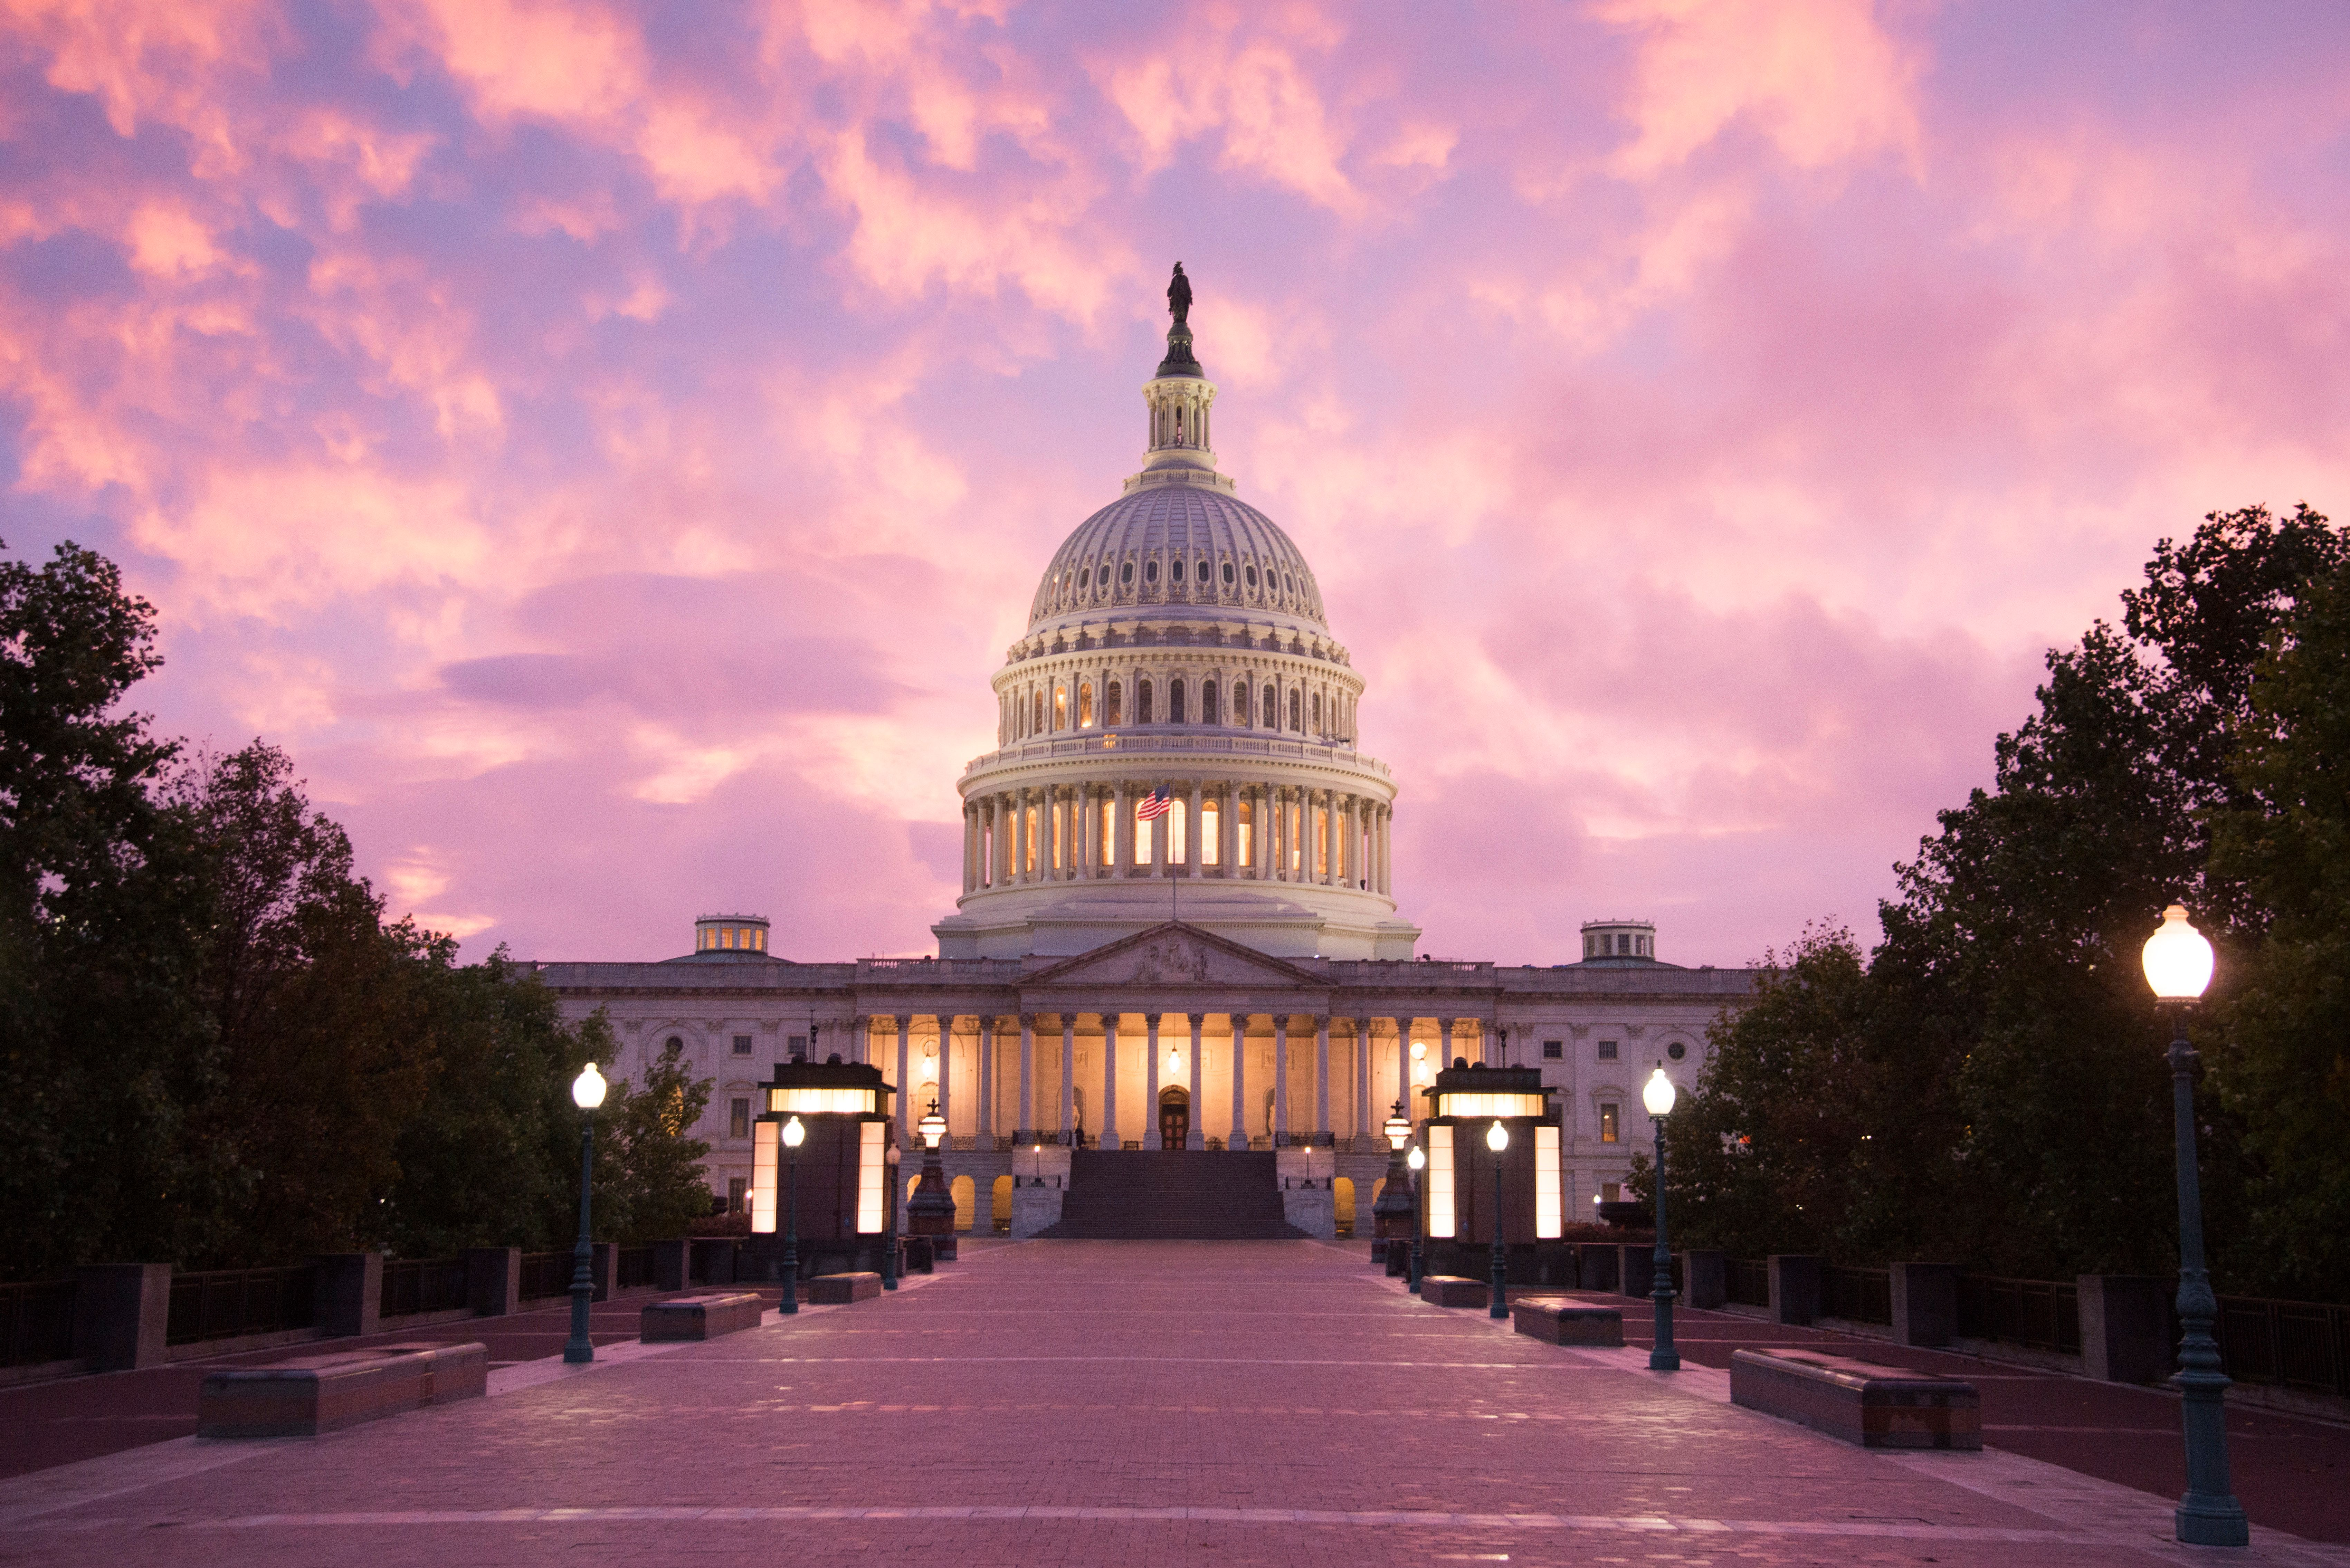 Washington DC: The sun sets on the United States Capitol building.